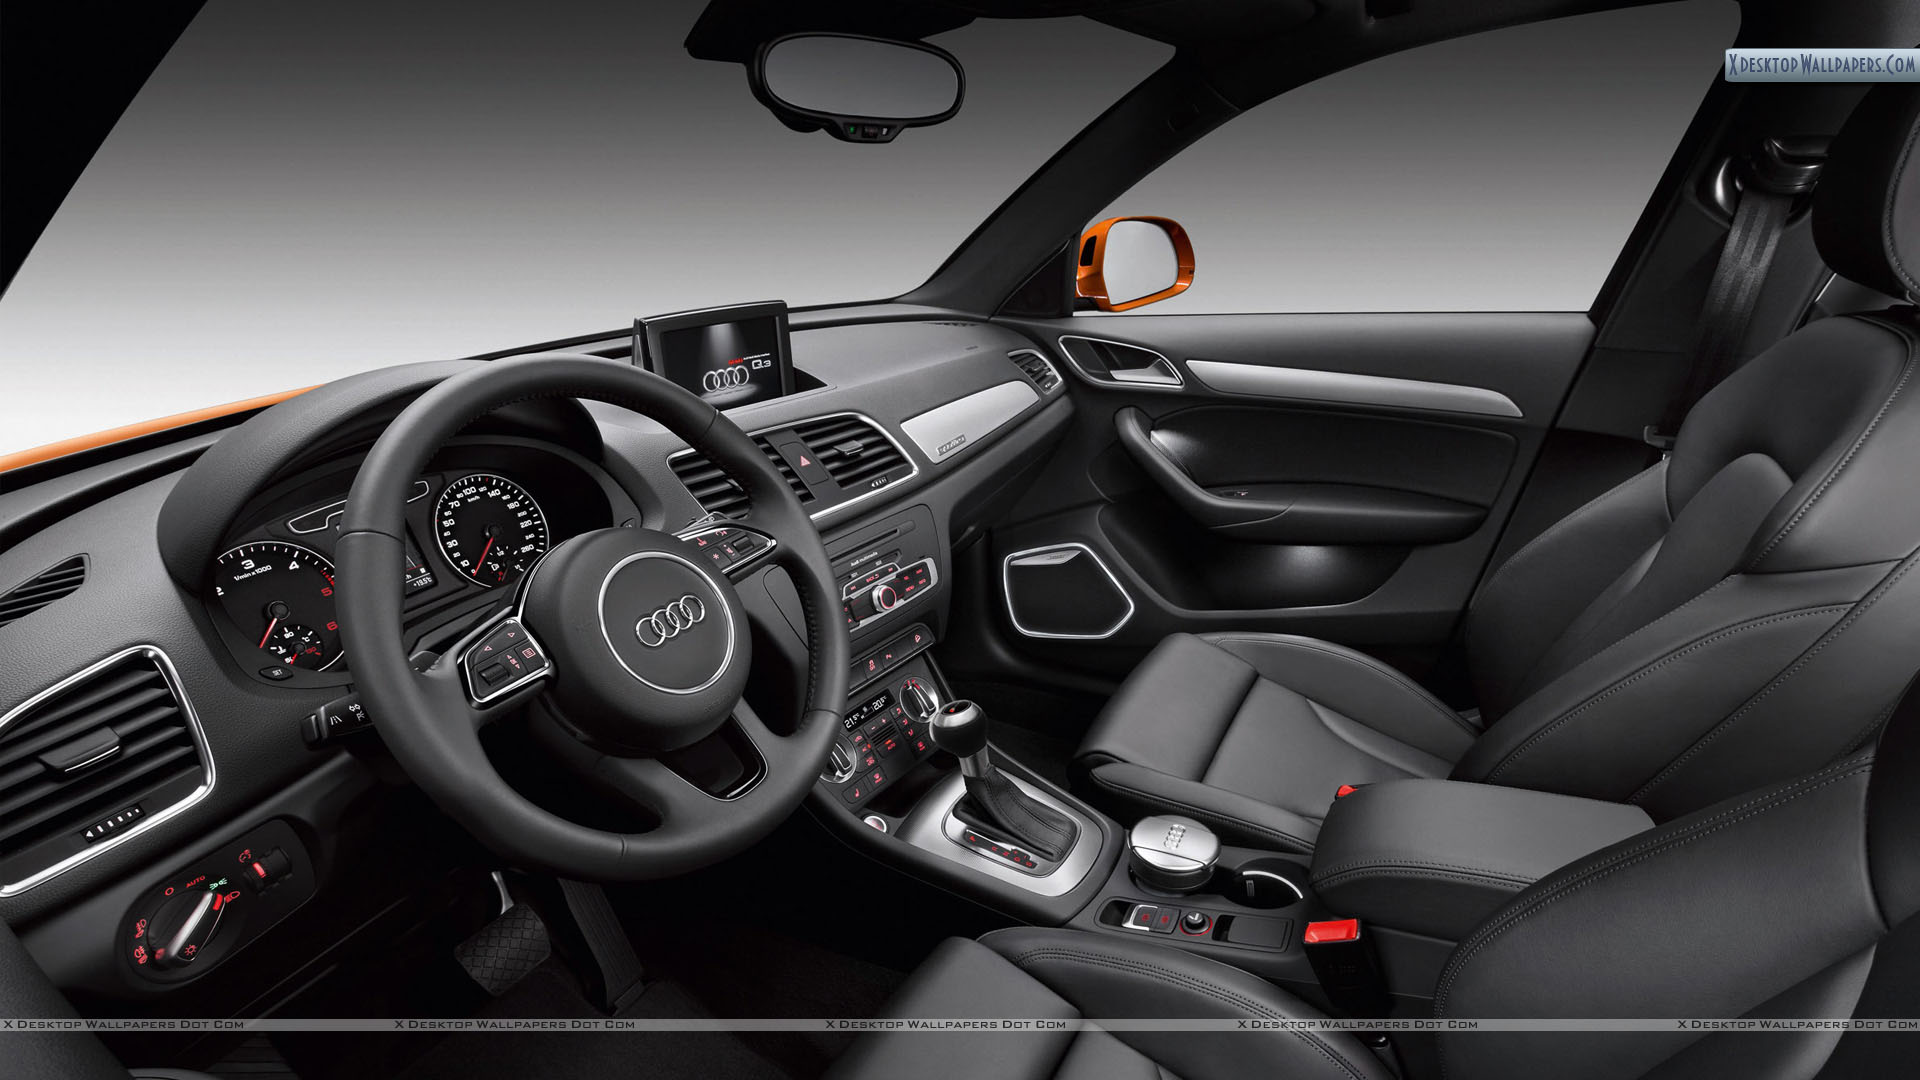 "Download 04 Nov 2011 View. You are viewing wallpaper titled ""Audi Q3 Interior ..."